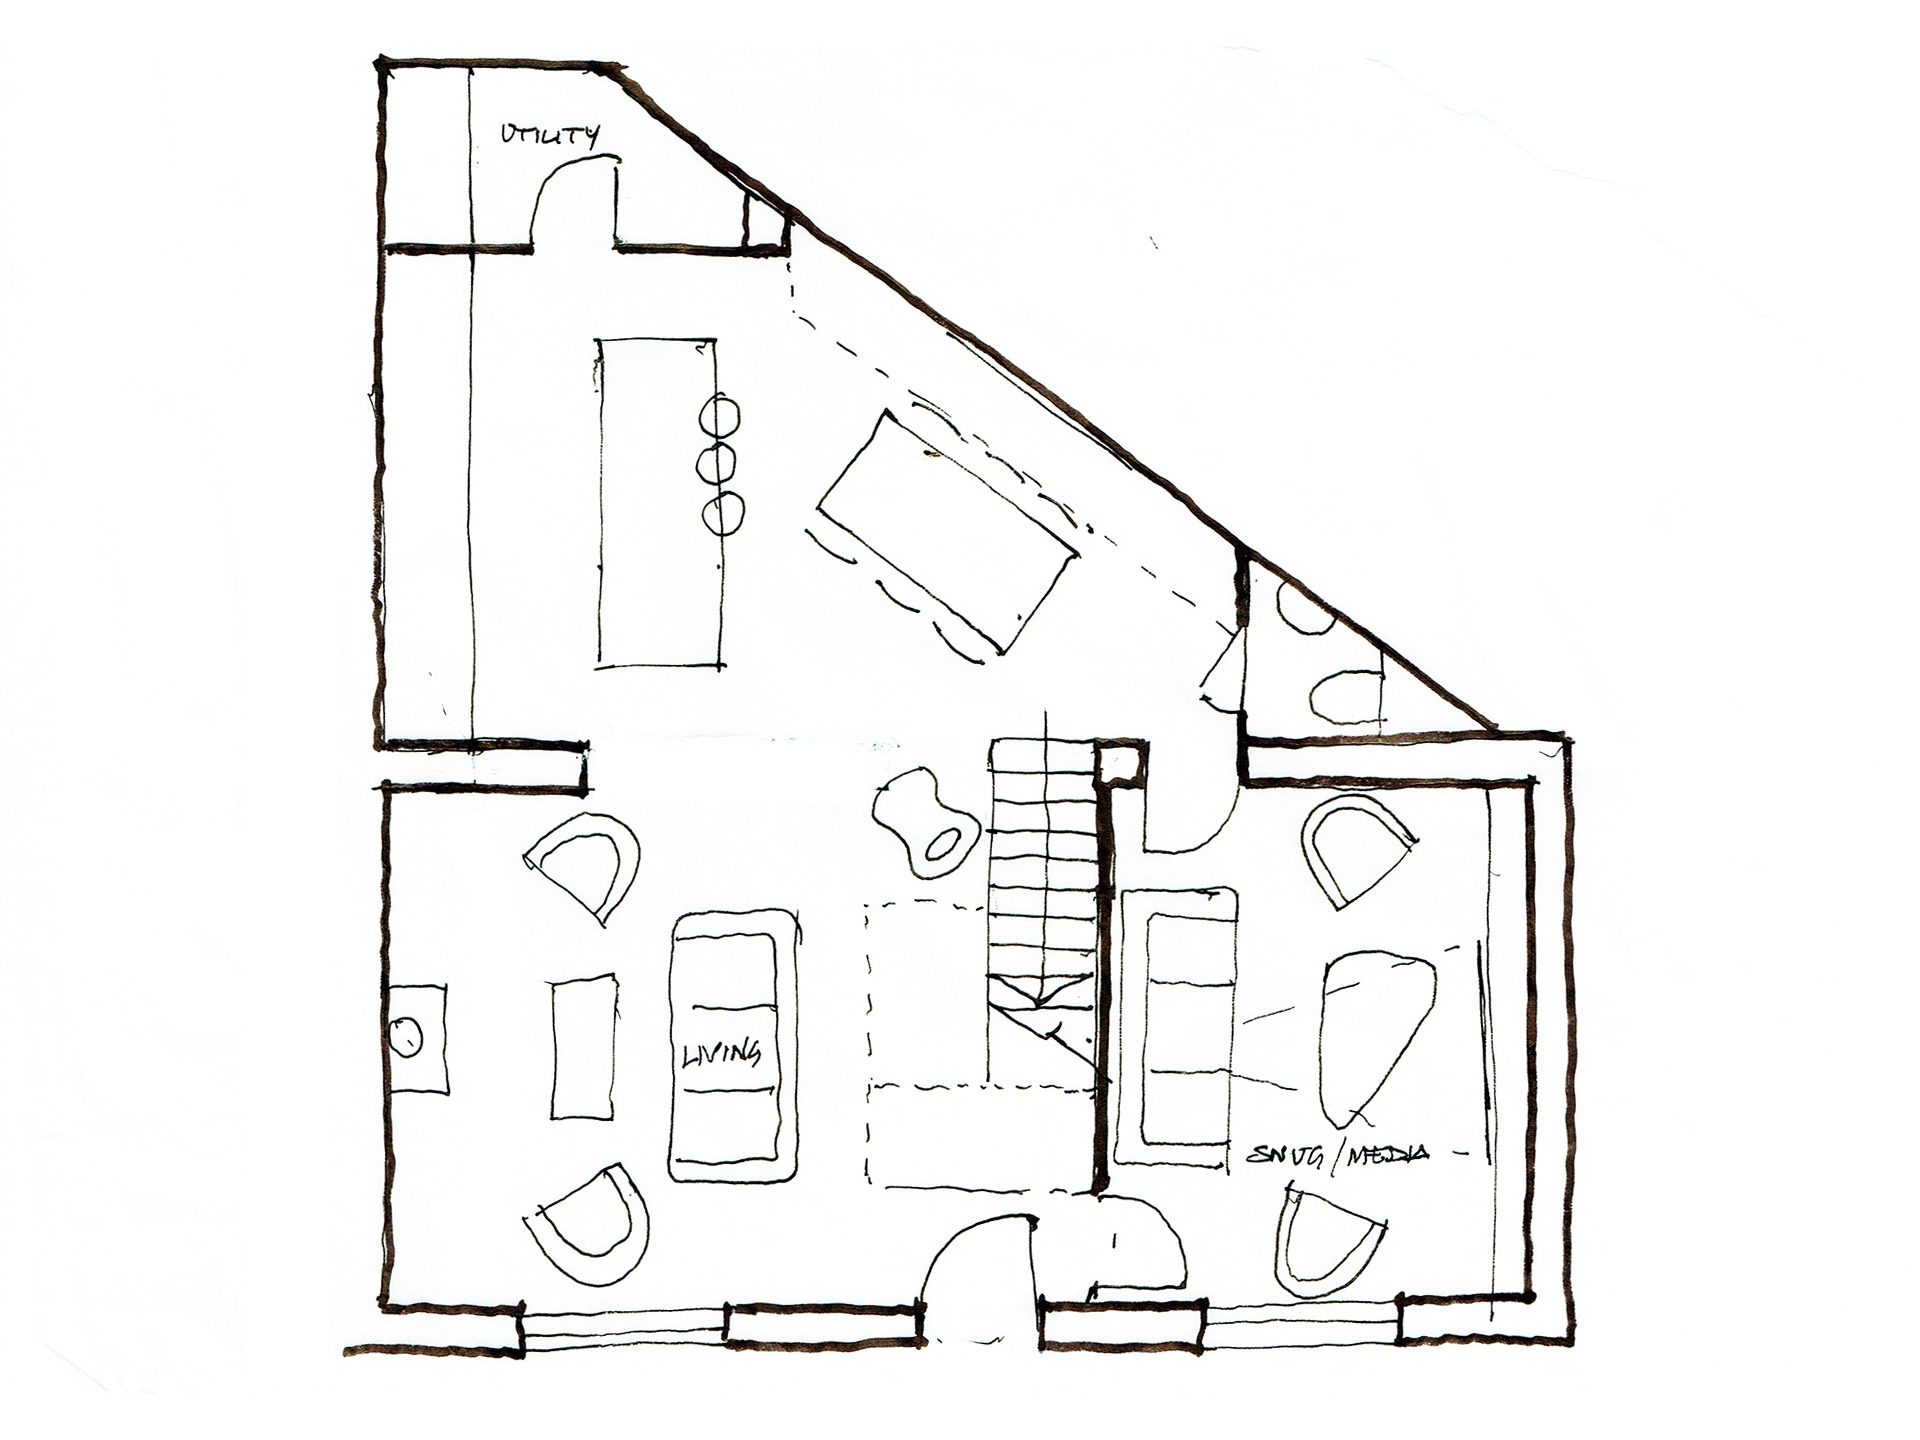 architect home visit e2 architecture Space Diagram this will give you the information you need to make the decisions on how to proceed to the next stage